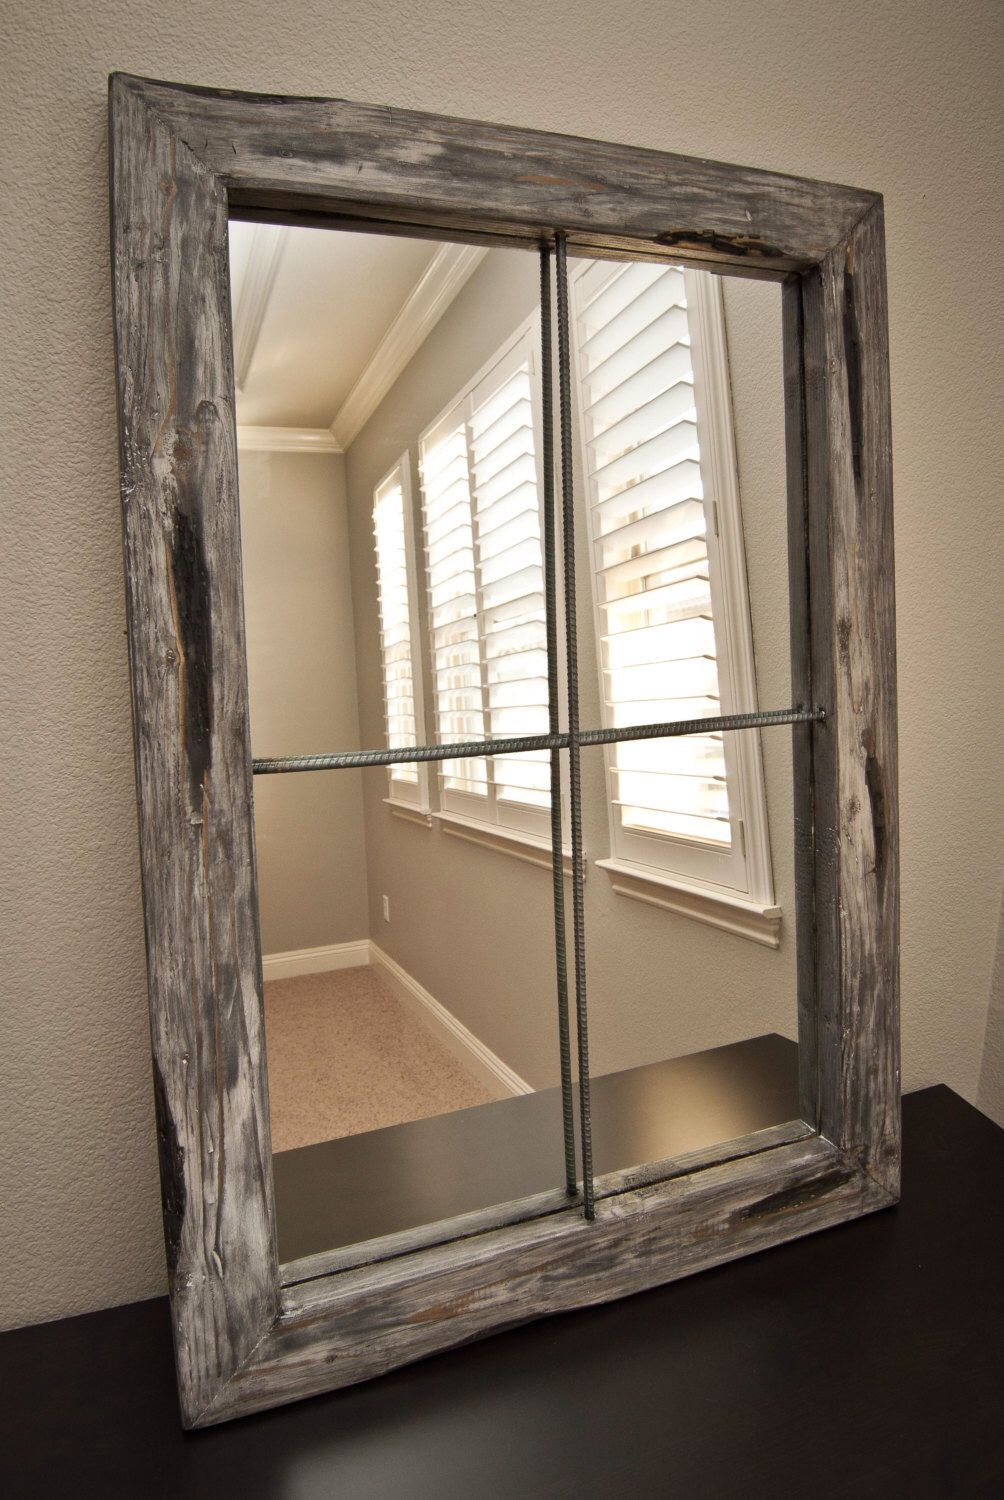 Pintrudy Layton On For The Home In 2019 | Faux Window Throughout Faux Window Wood Wall Mirrors (View 15 of 30)